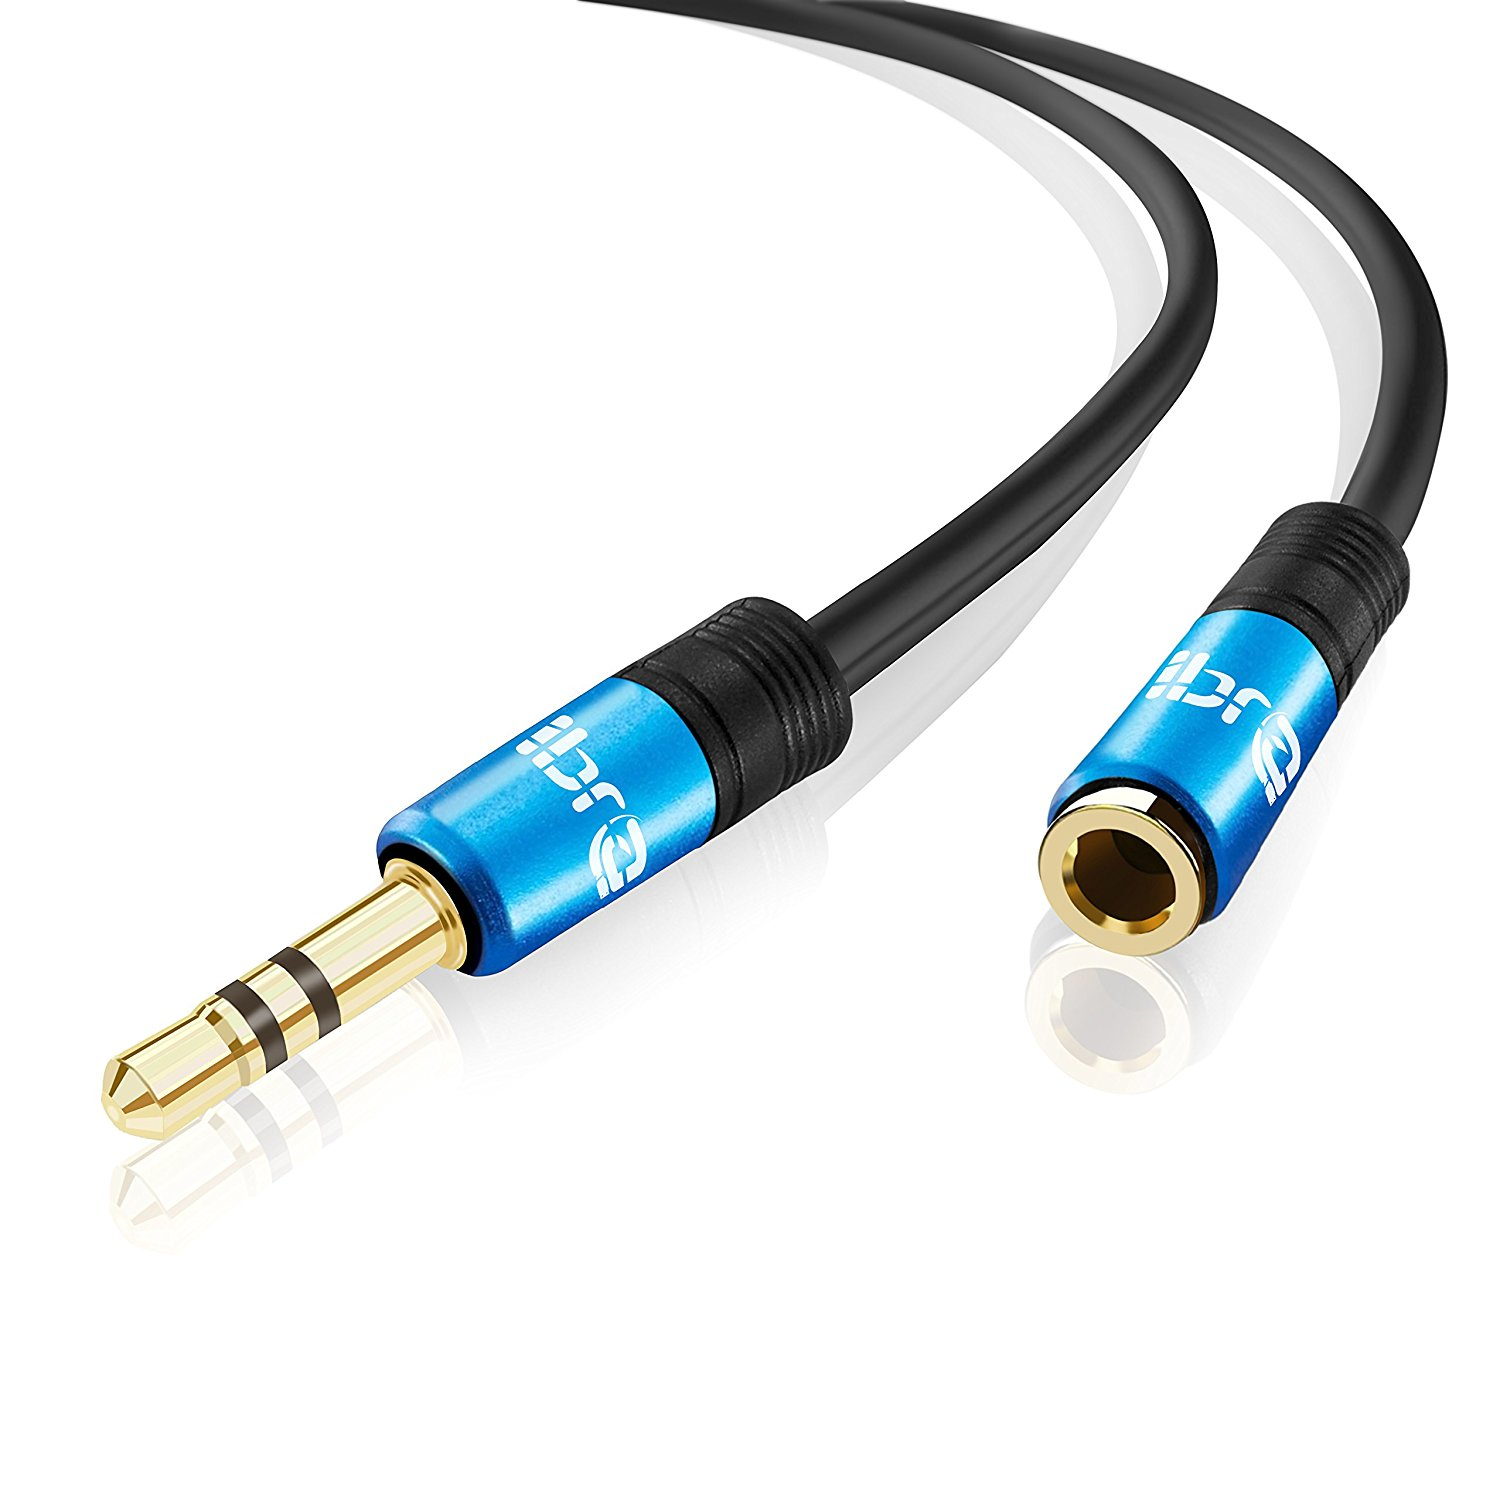 IBRA 2M Stereo Jack Extension Cable 3.5mm Male > 3.5mm Female - Blue